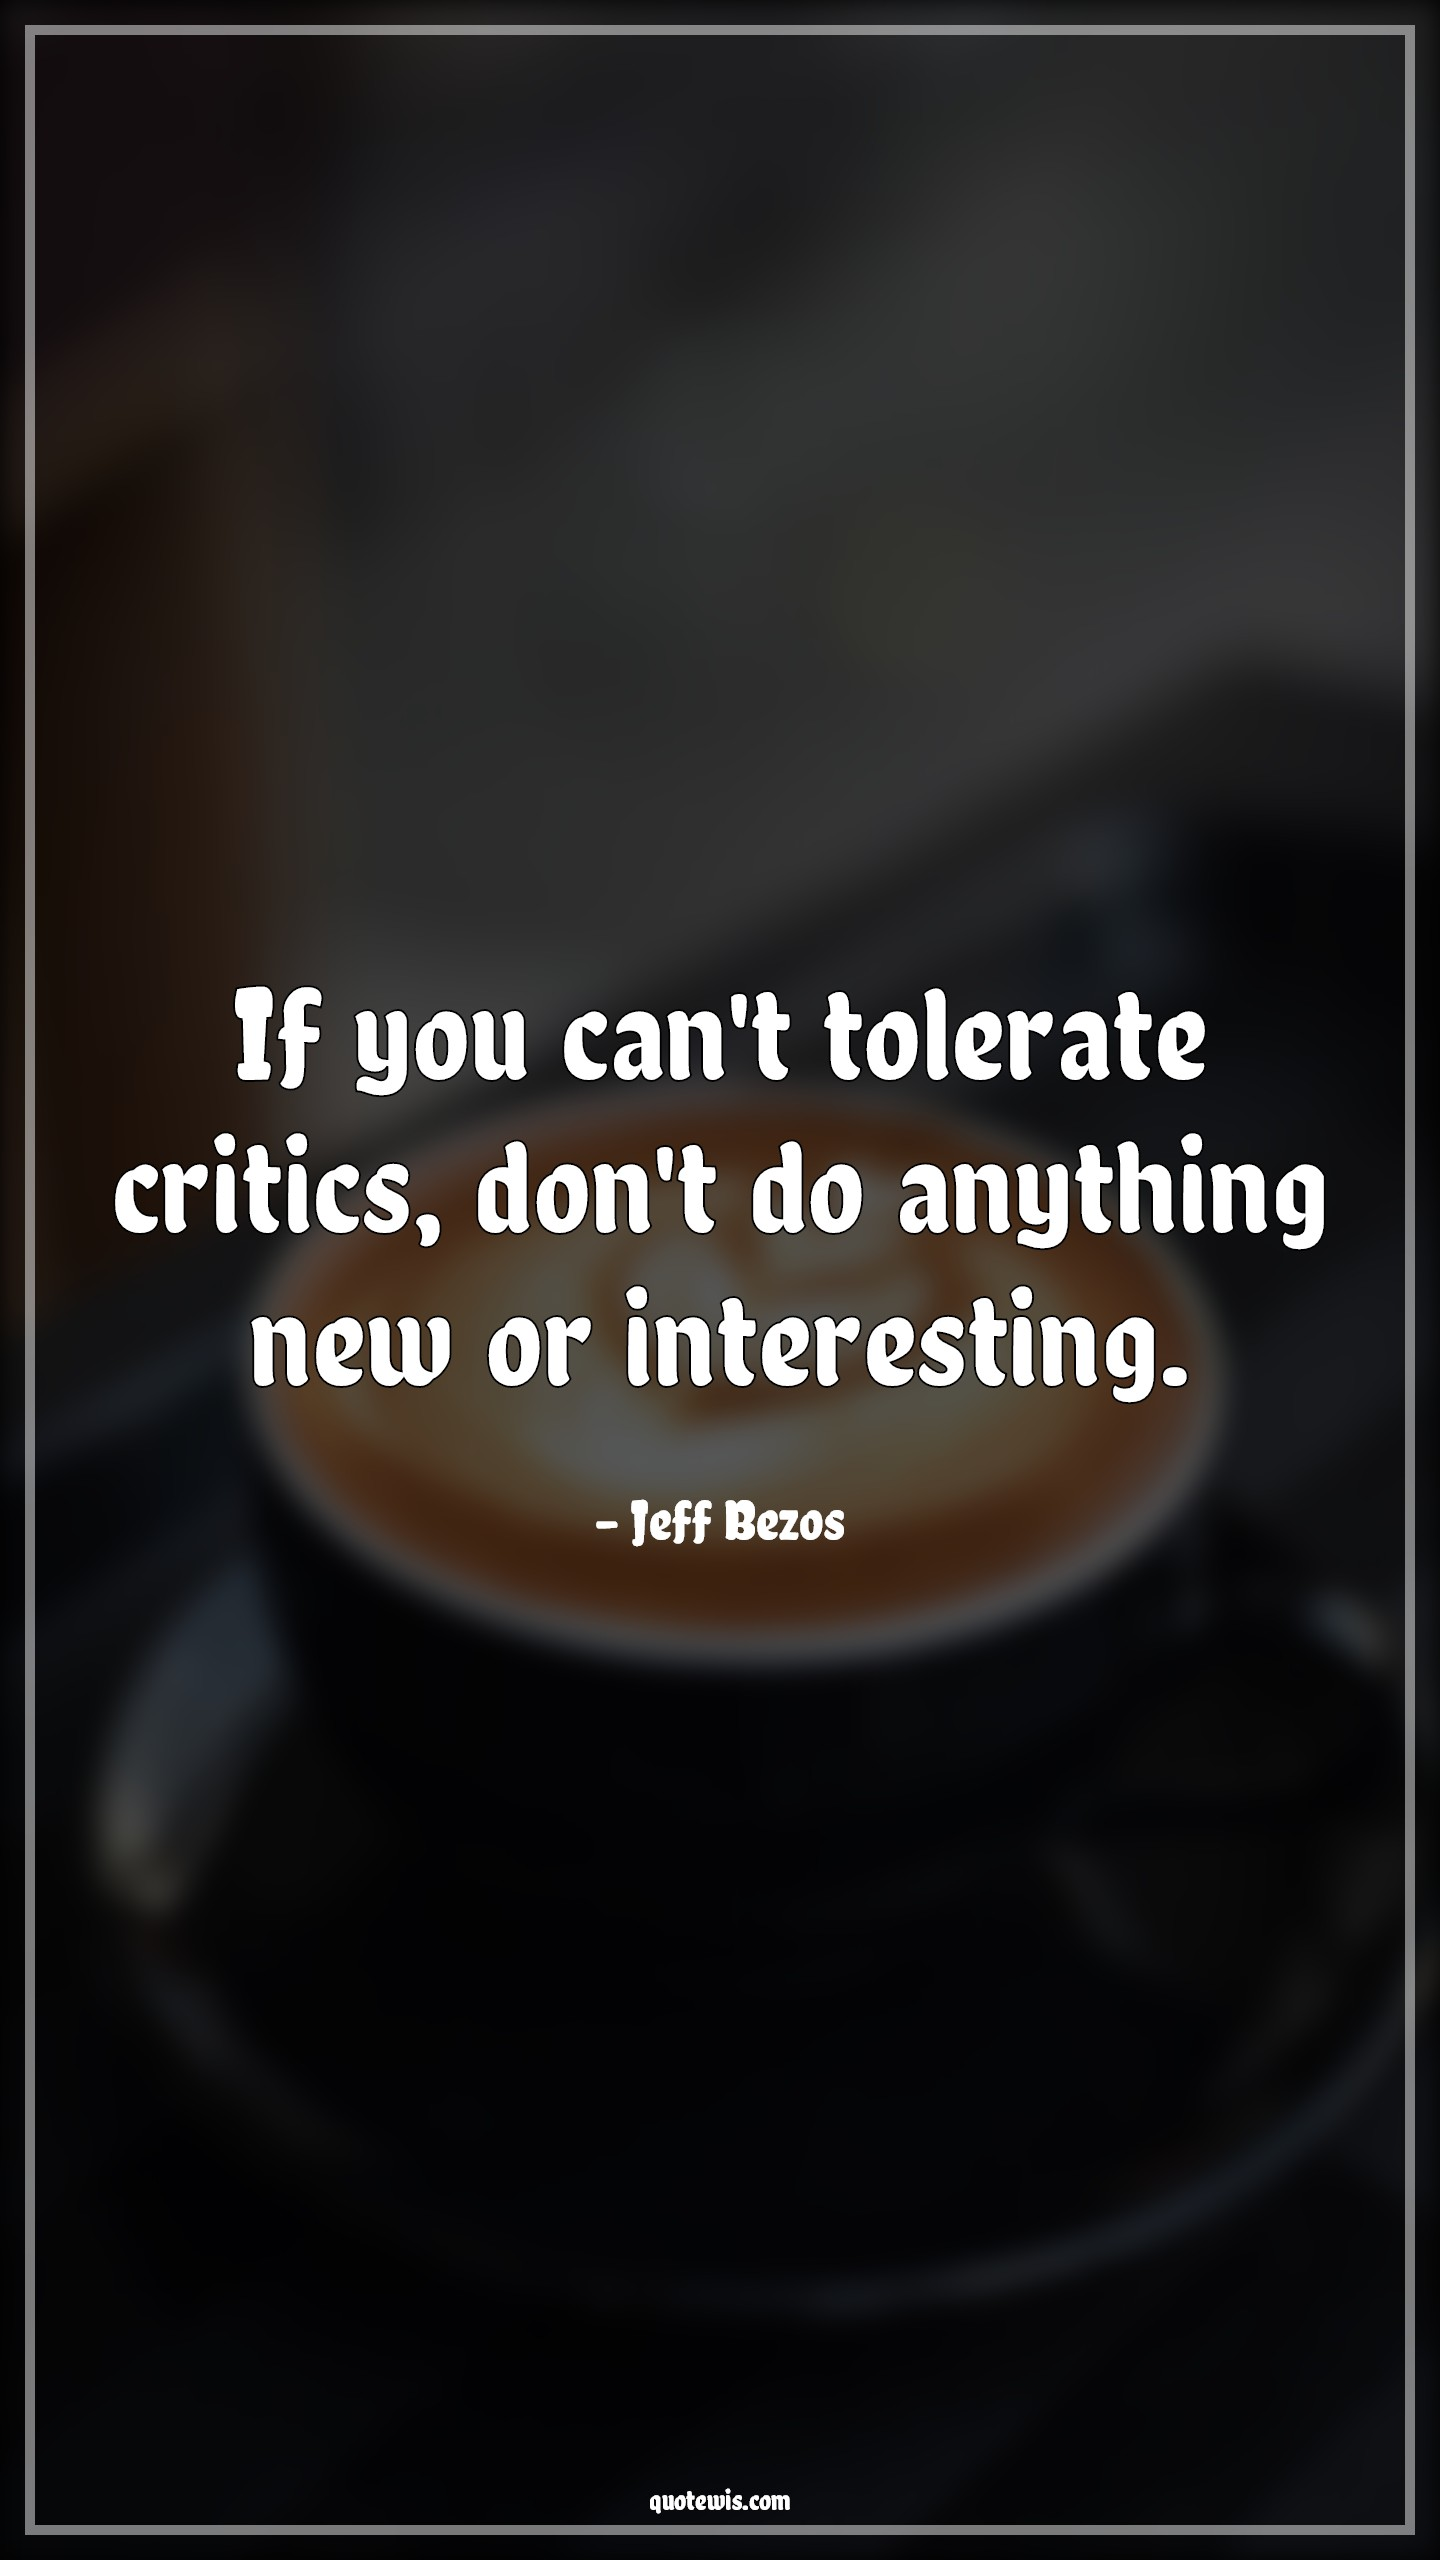 If you can't tolerate critics, don't do anything new or interesting.